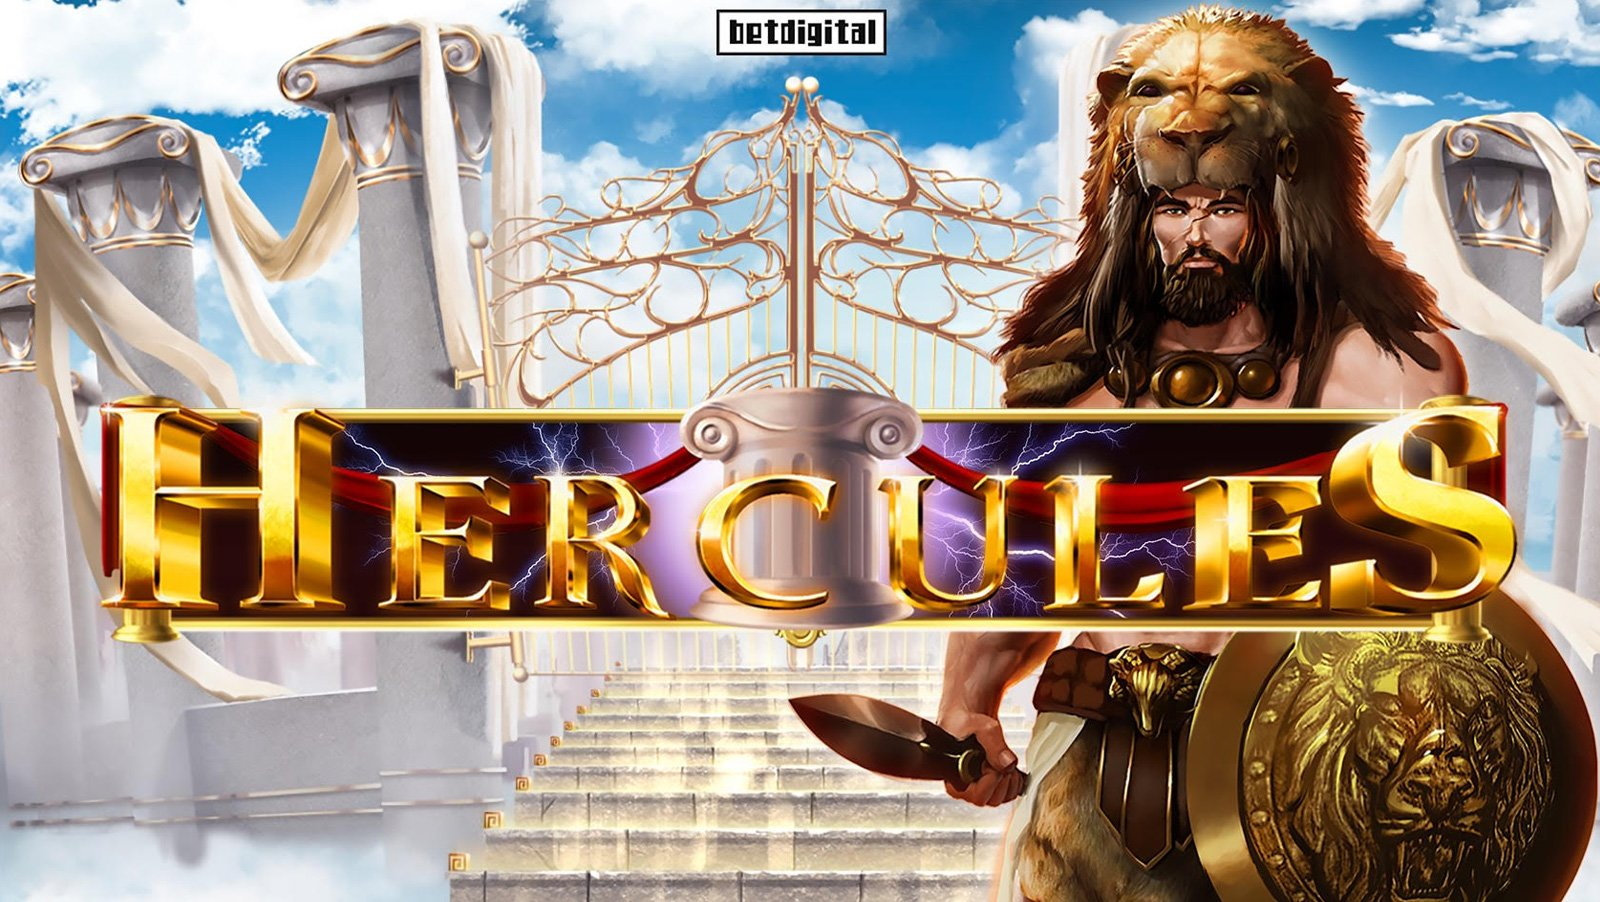 Betdigital's Hercules slot powers up William Hill's performance charts